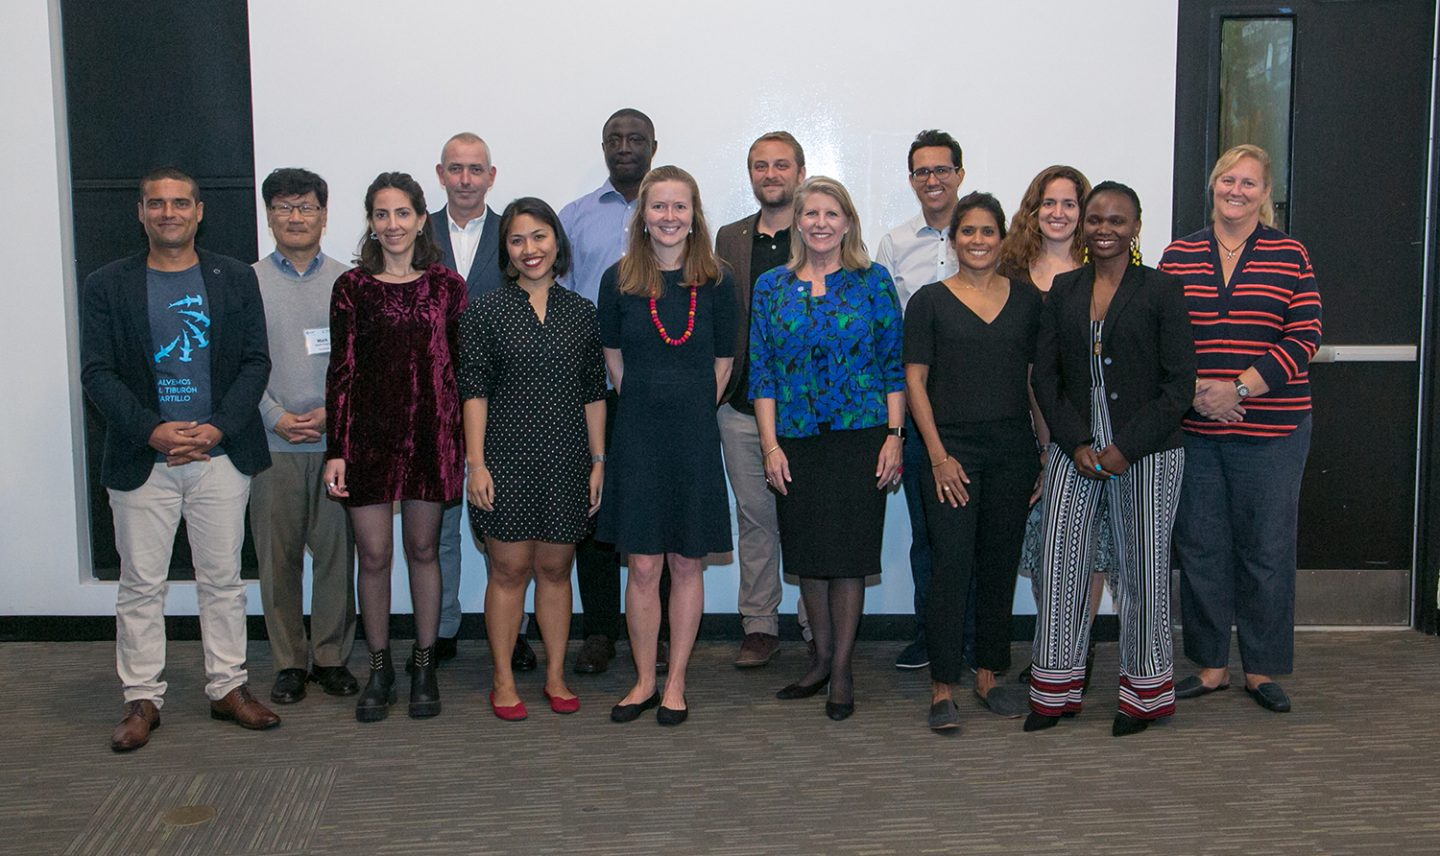 The New England Aquarium MCAF Fellows gathered in Boston for the inaugural summit this fall (from left, Andres Lopez, Florencia Vilches, John Flynn, Anna Oposa, Tomas Diagne, Shah Selbe, Daniel Fernando, Asha de Vos, Ph.D., Nelly Kadagi, Ph.D., and Lucy Keith-Diagne, Ph.D. Also shown are Mark Huang, Managing Director of SeaAhead (second from left); Elizabeth Stephenson, Program Officer and Chair of MCAF (at center), and New England Aquarium President and CEO Vikki Spruill (sixth from right). (Photo: Reba Saldanha)